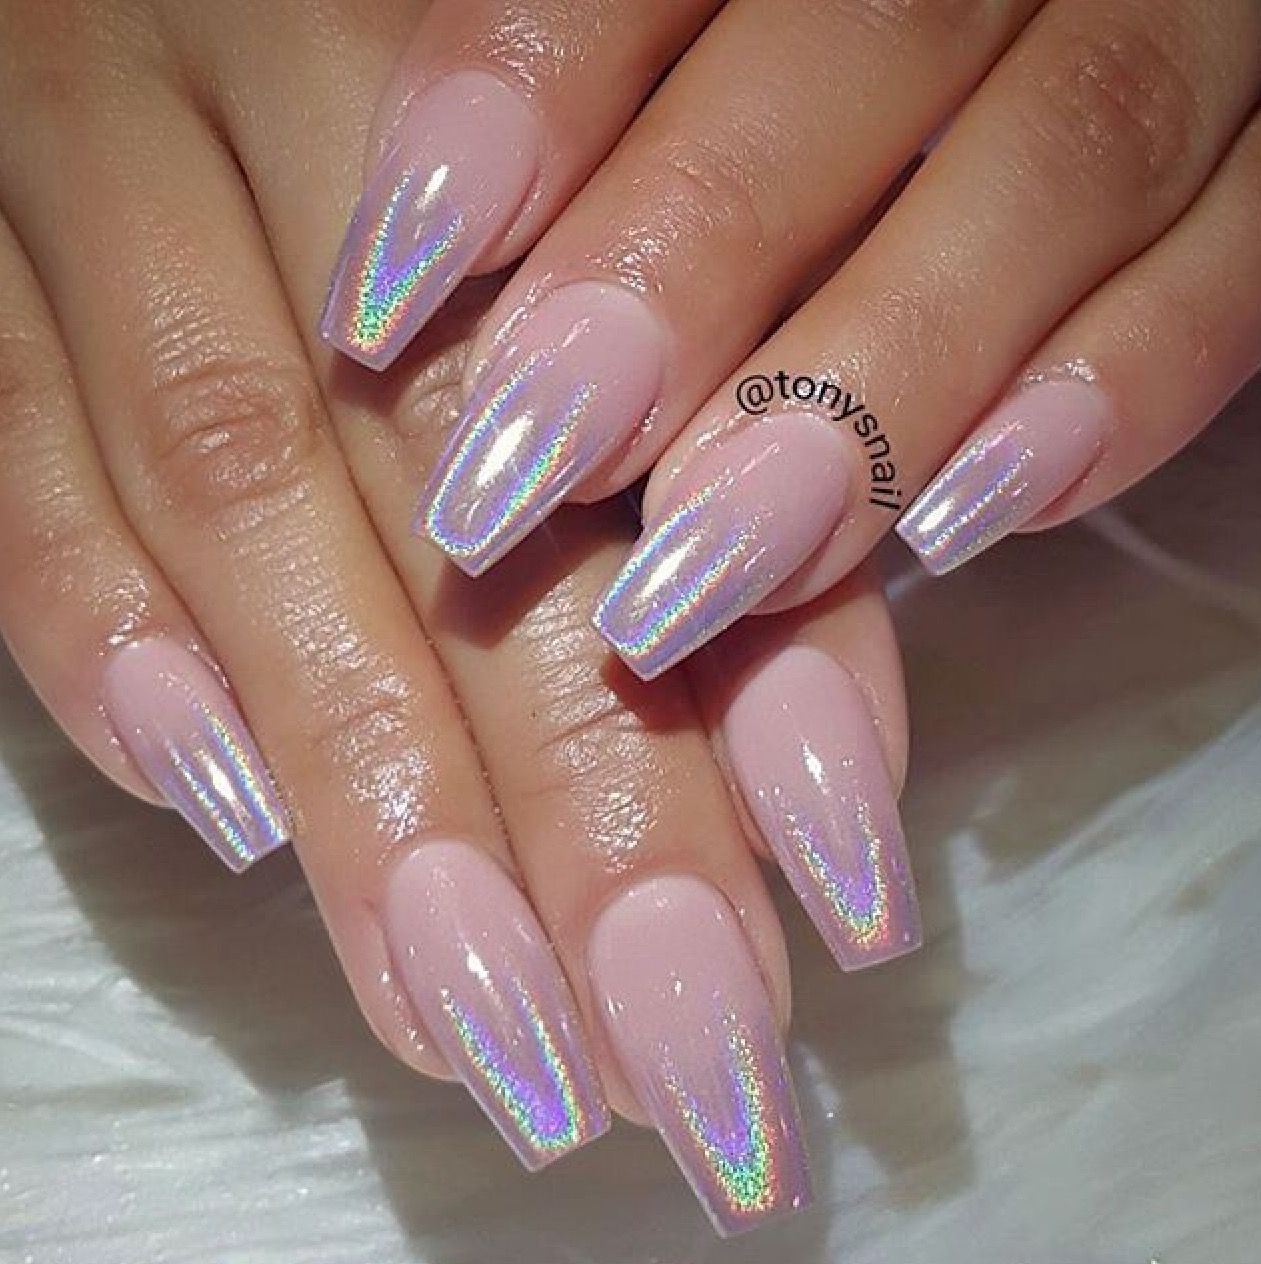 Nails On 10 Holographic Chrome Ombre Facebook Shorthaircutstyles Posts 1759020237721749